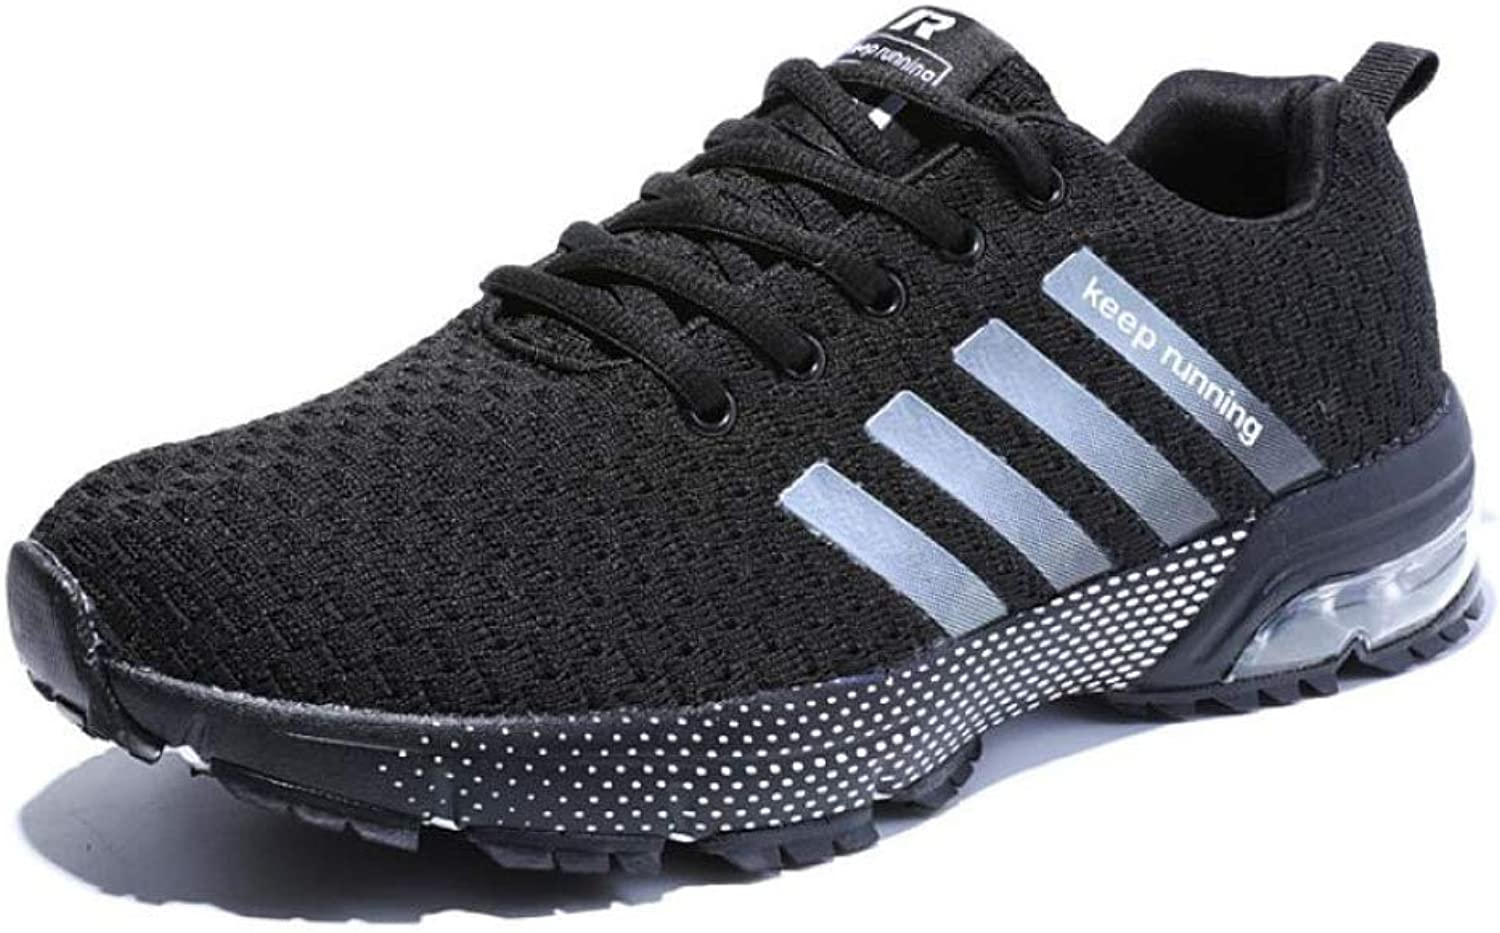 Sneakers Men Knitted shoes Knitted Lightweight Casual Fitness Gym shoes Trainers Jogging Casual